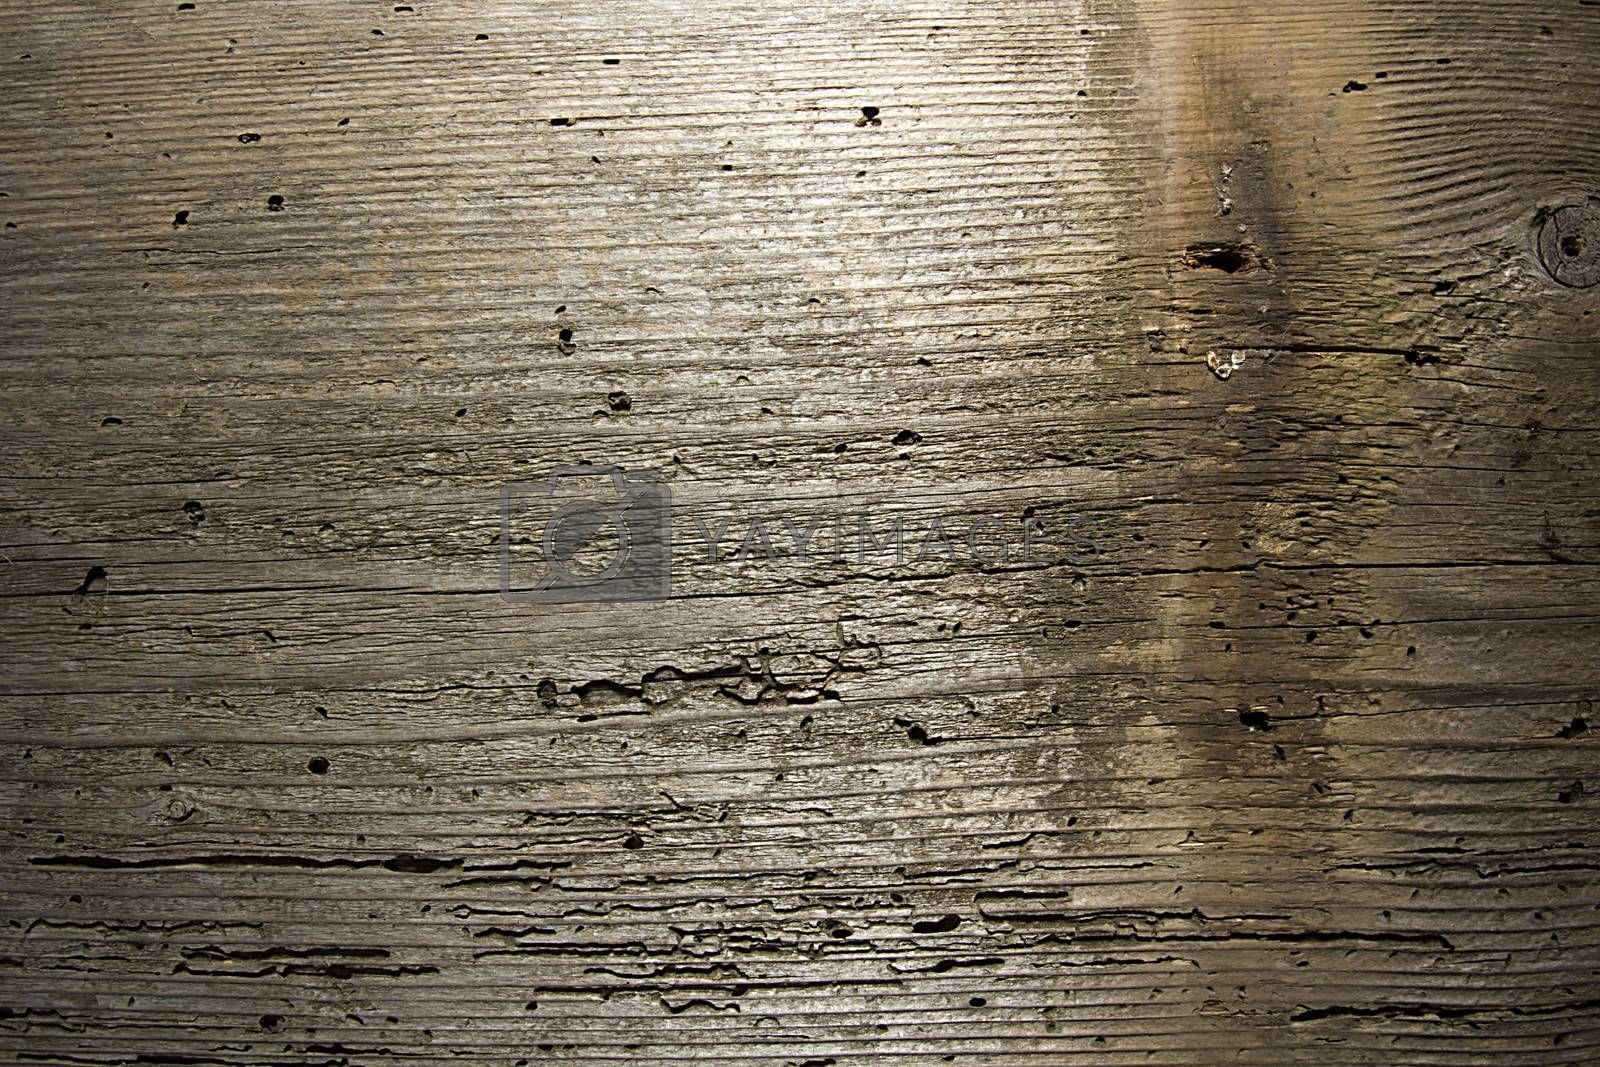 Old worn wooden board as a background